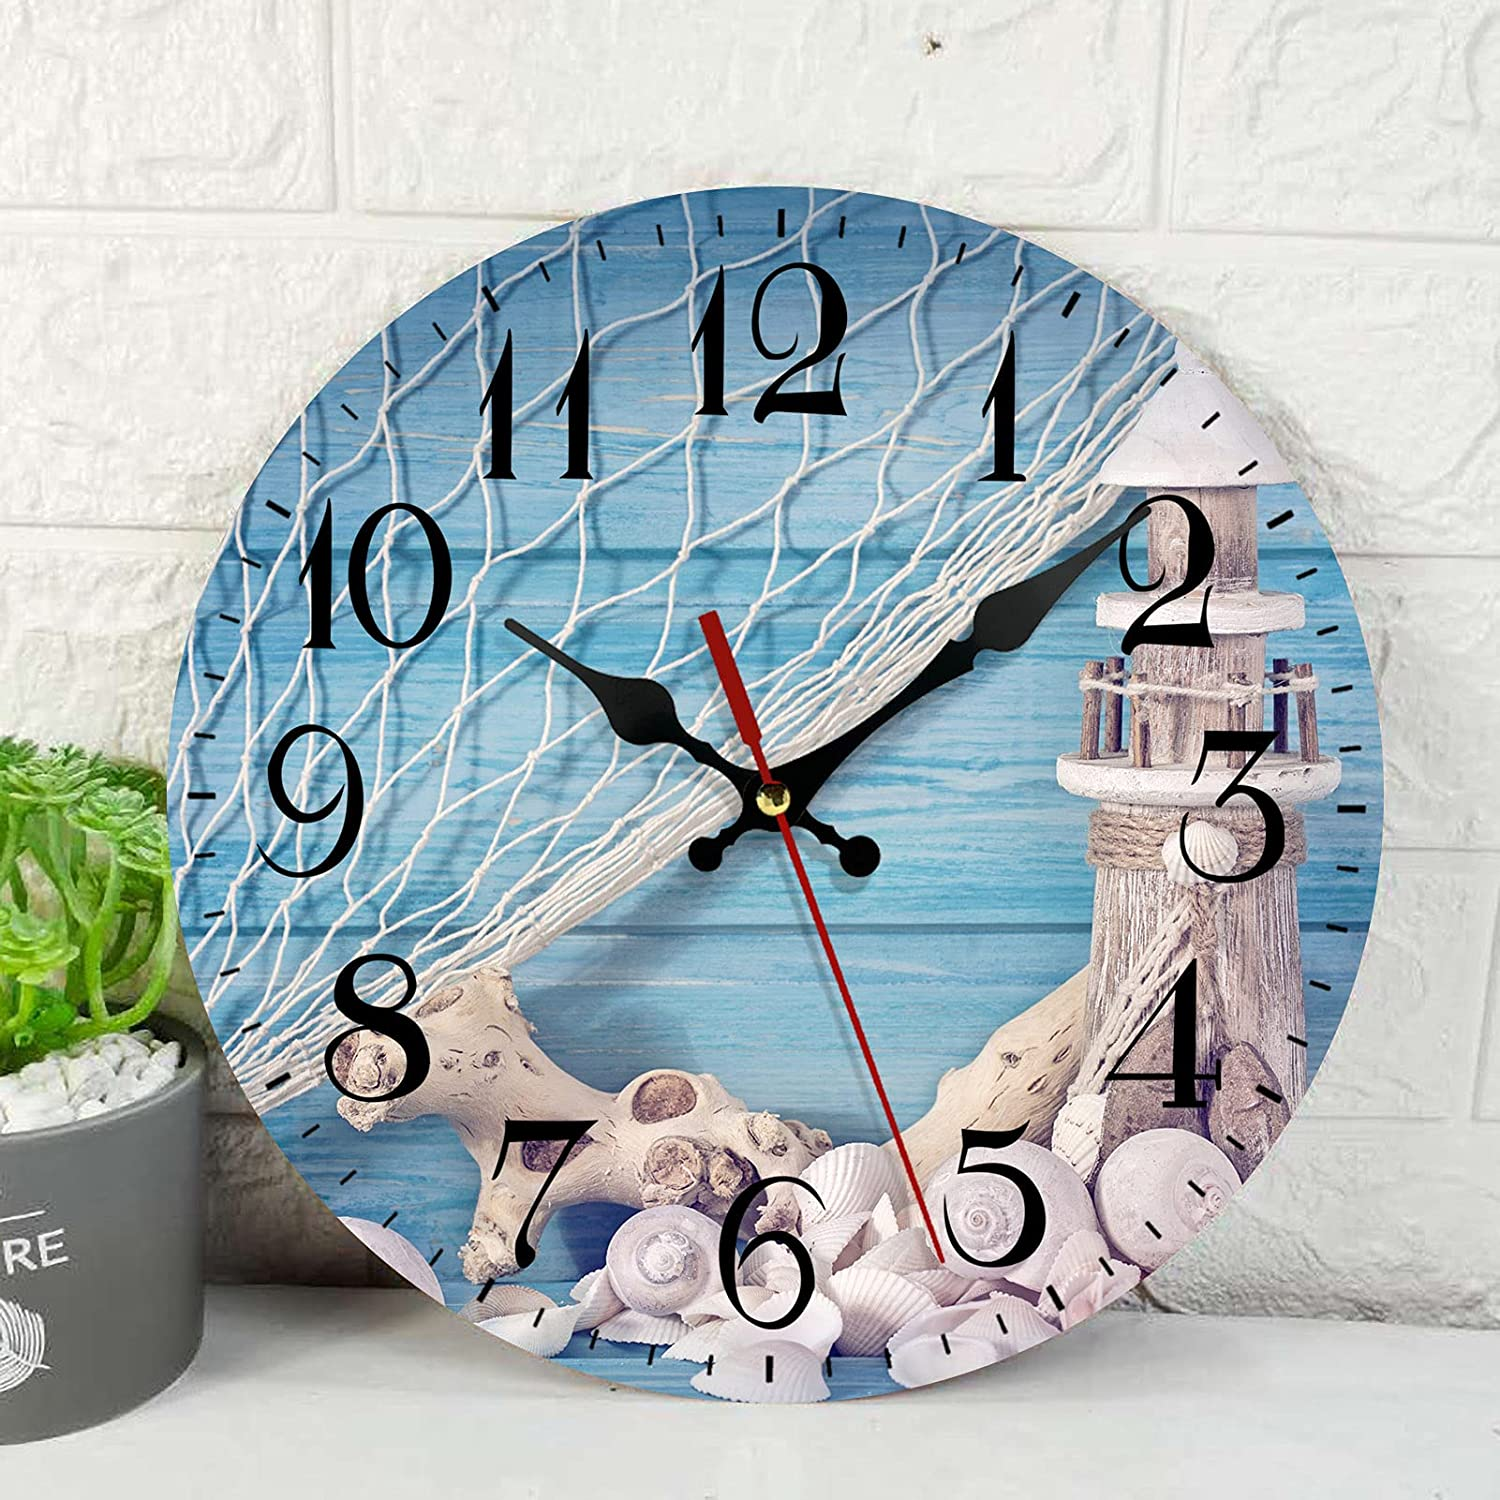 Wooden Wall Clock Silent Non-Ticking , Blue Shabby Shell Beach Net Sea Seastar Vintage Round Wall Clocks Decor for Home Kitchen Living Room Office, Battery Operated(12 Inch)